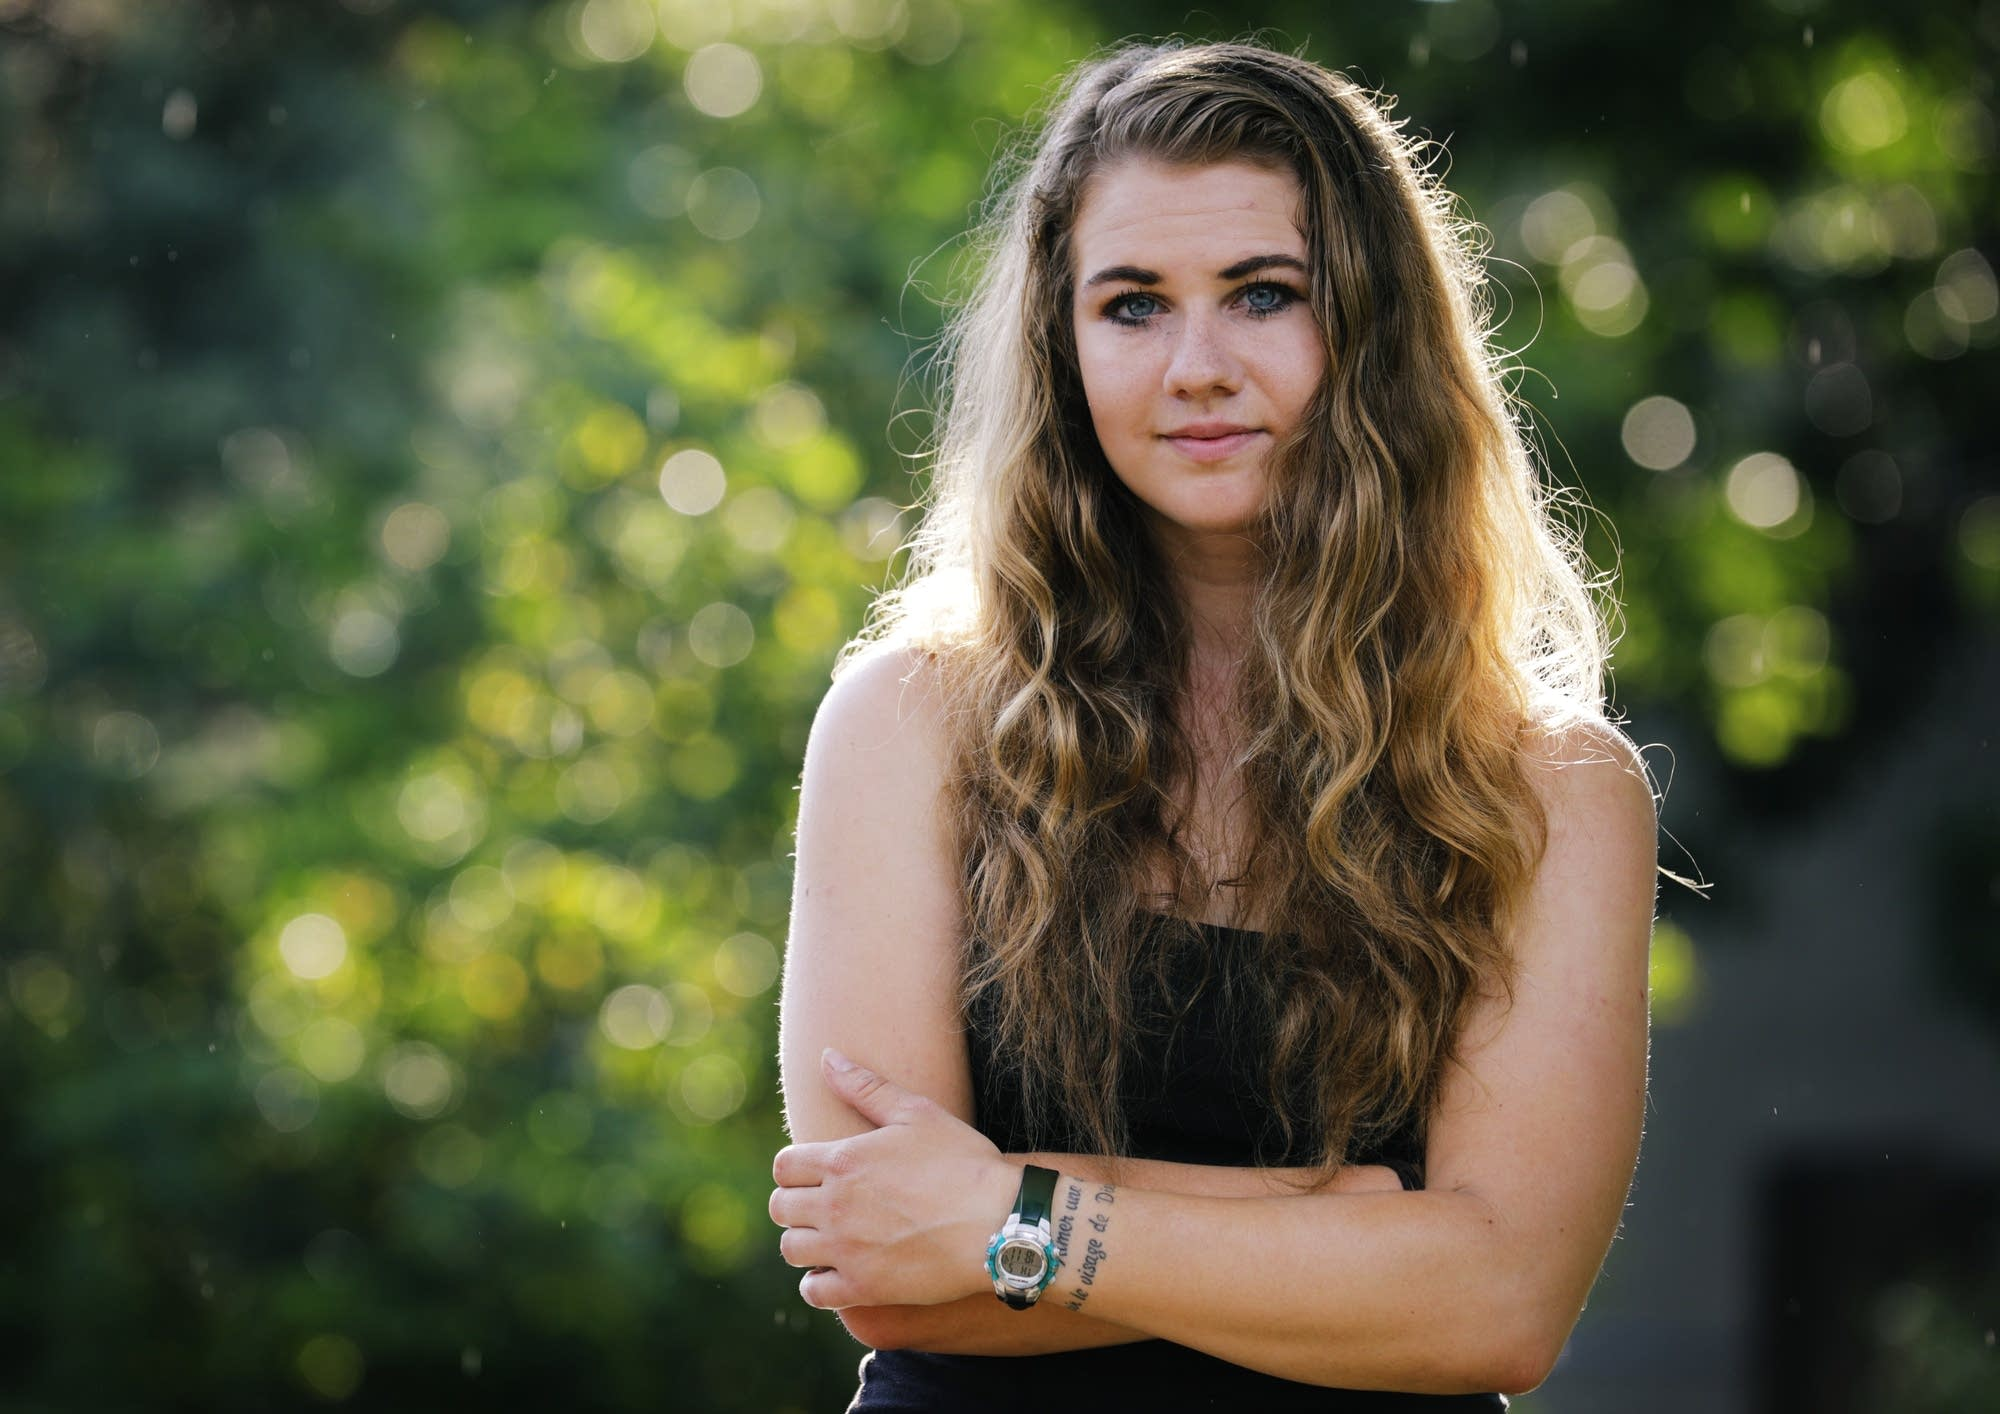 Laura Knoblach, an accomplished triathlete, at her home in Boulder, Colo.